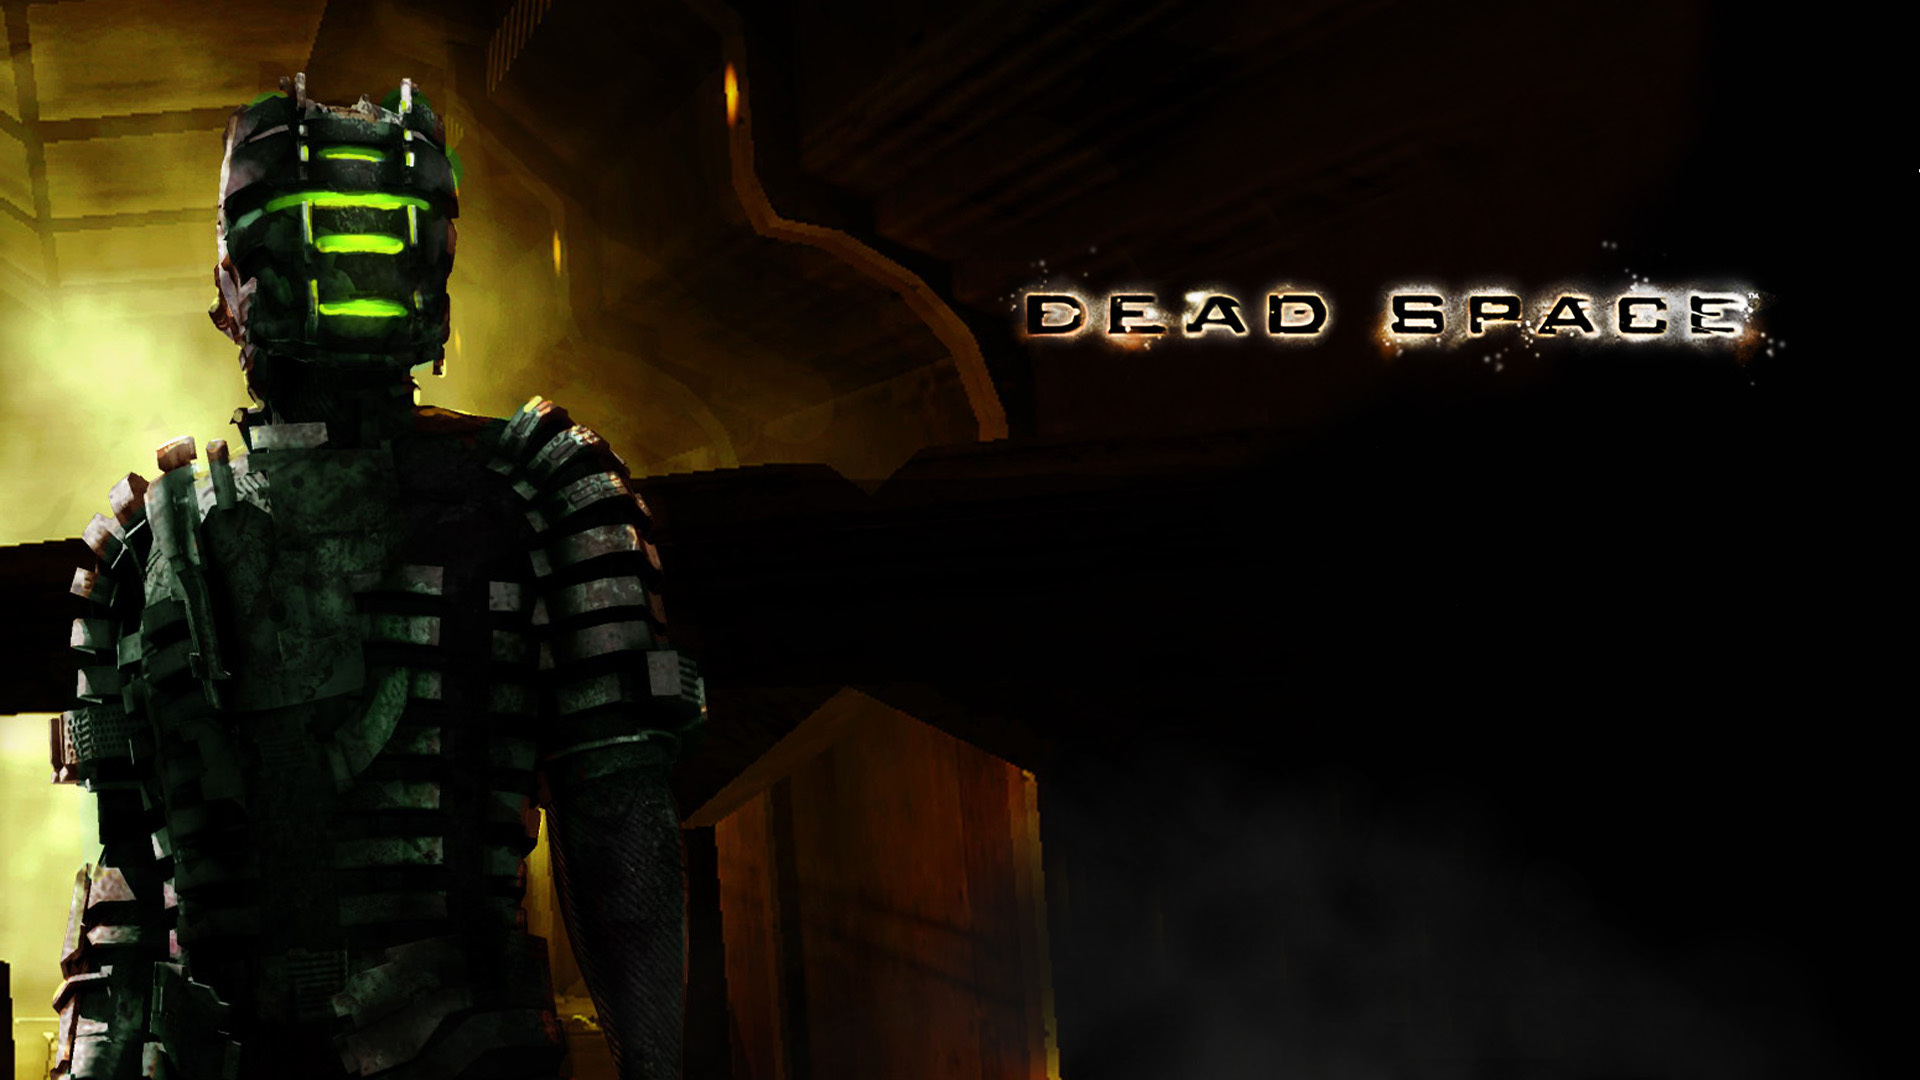 windows wallpaper deadspacenxe003 space wallpapers dead 1920x1080